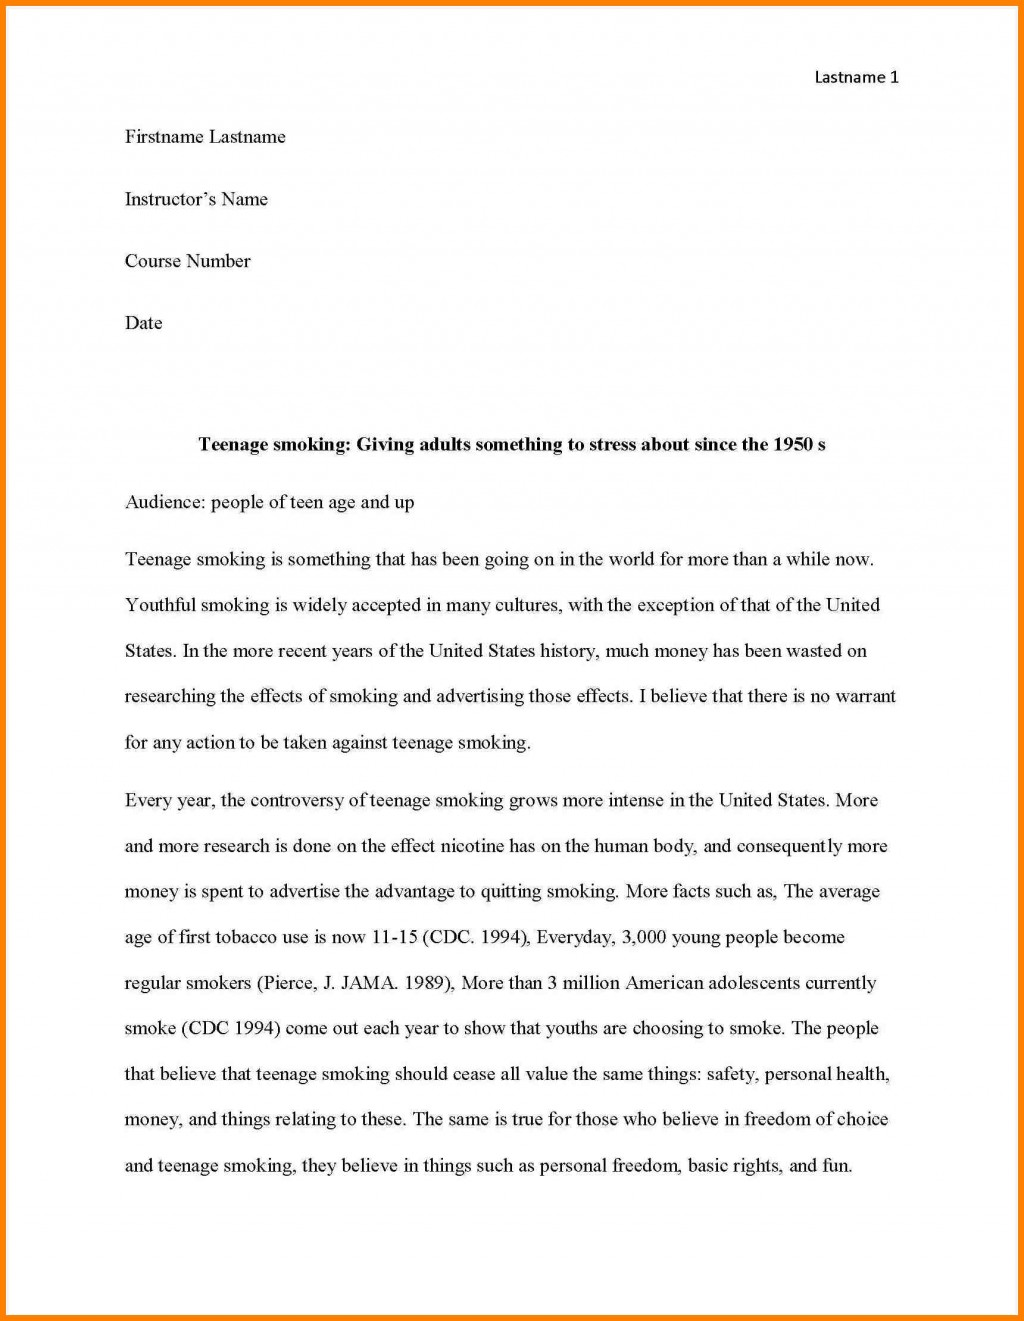 005 Cosmetology Essay Example High School Persuasive Waiter Bartender Cover Letter Essays Bar Staff Hair Stylist Relocation Phd Medical Set Resume Description Interior Design Event Archaicawful Scholarship Examples Conclusion Large